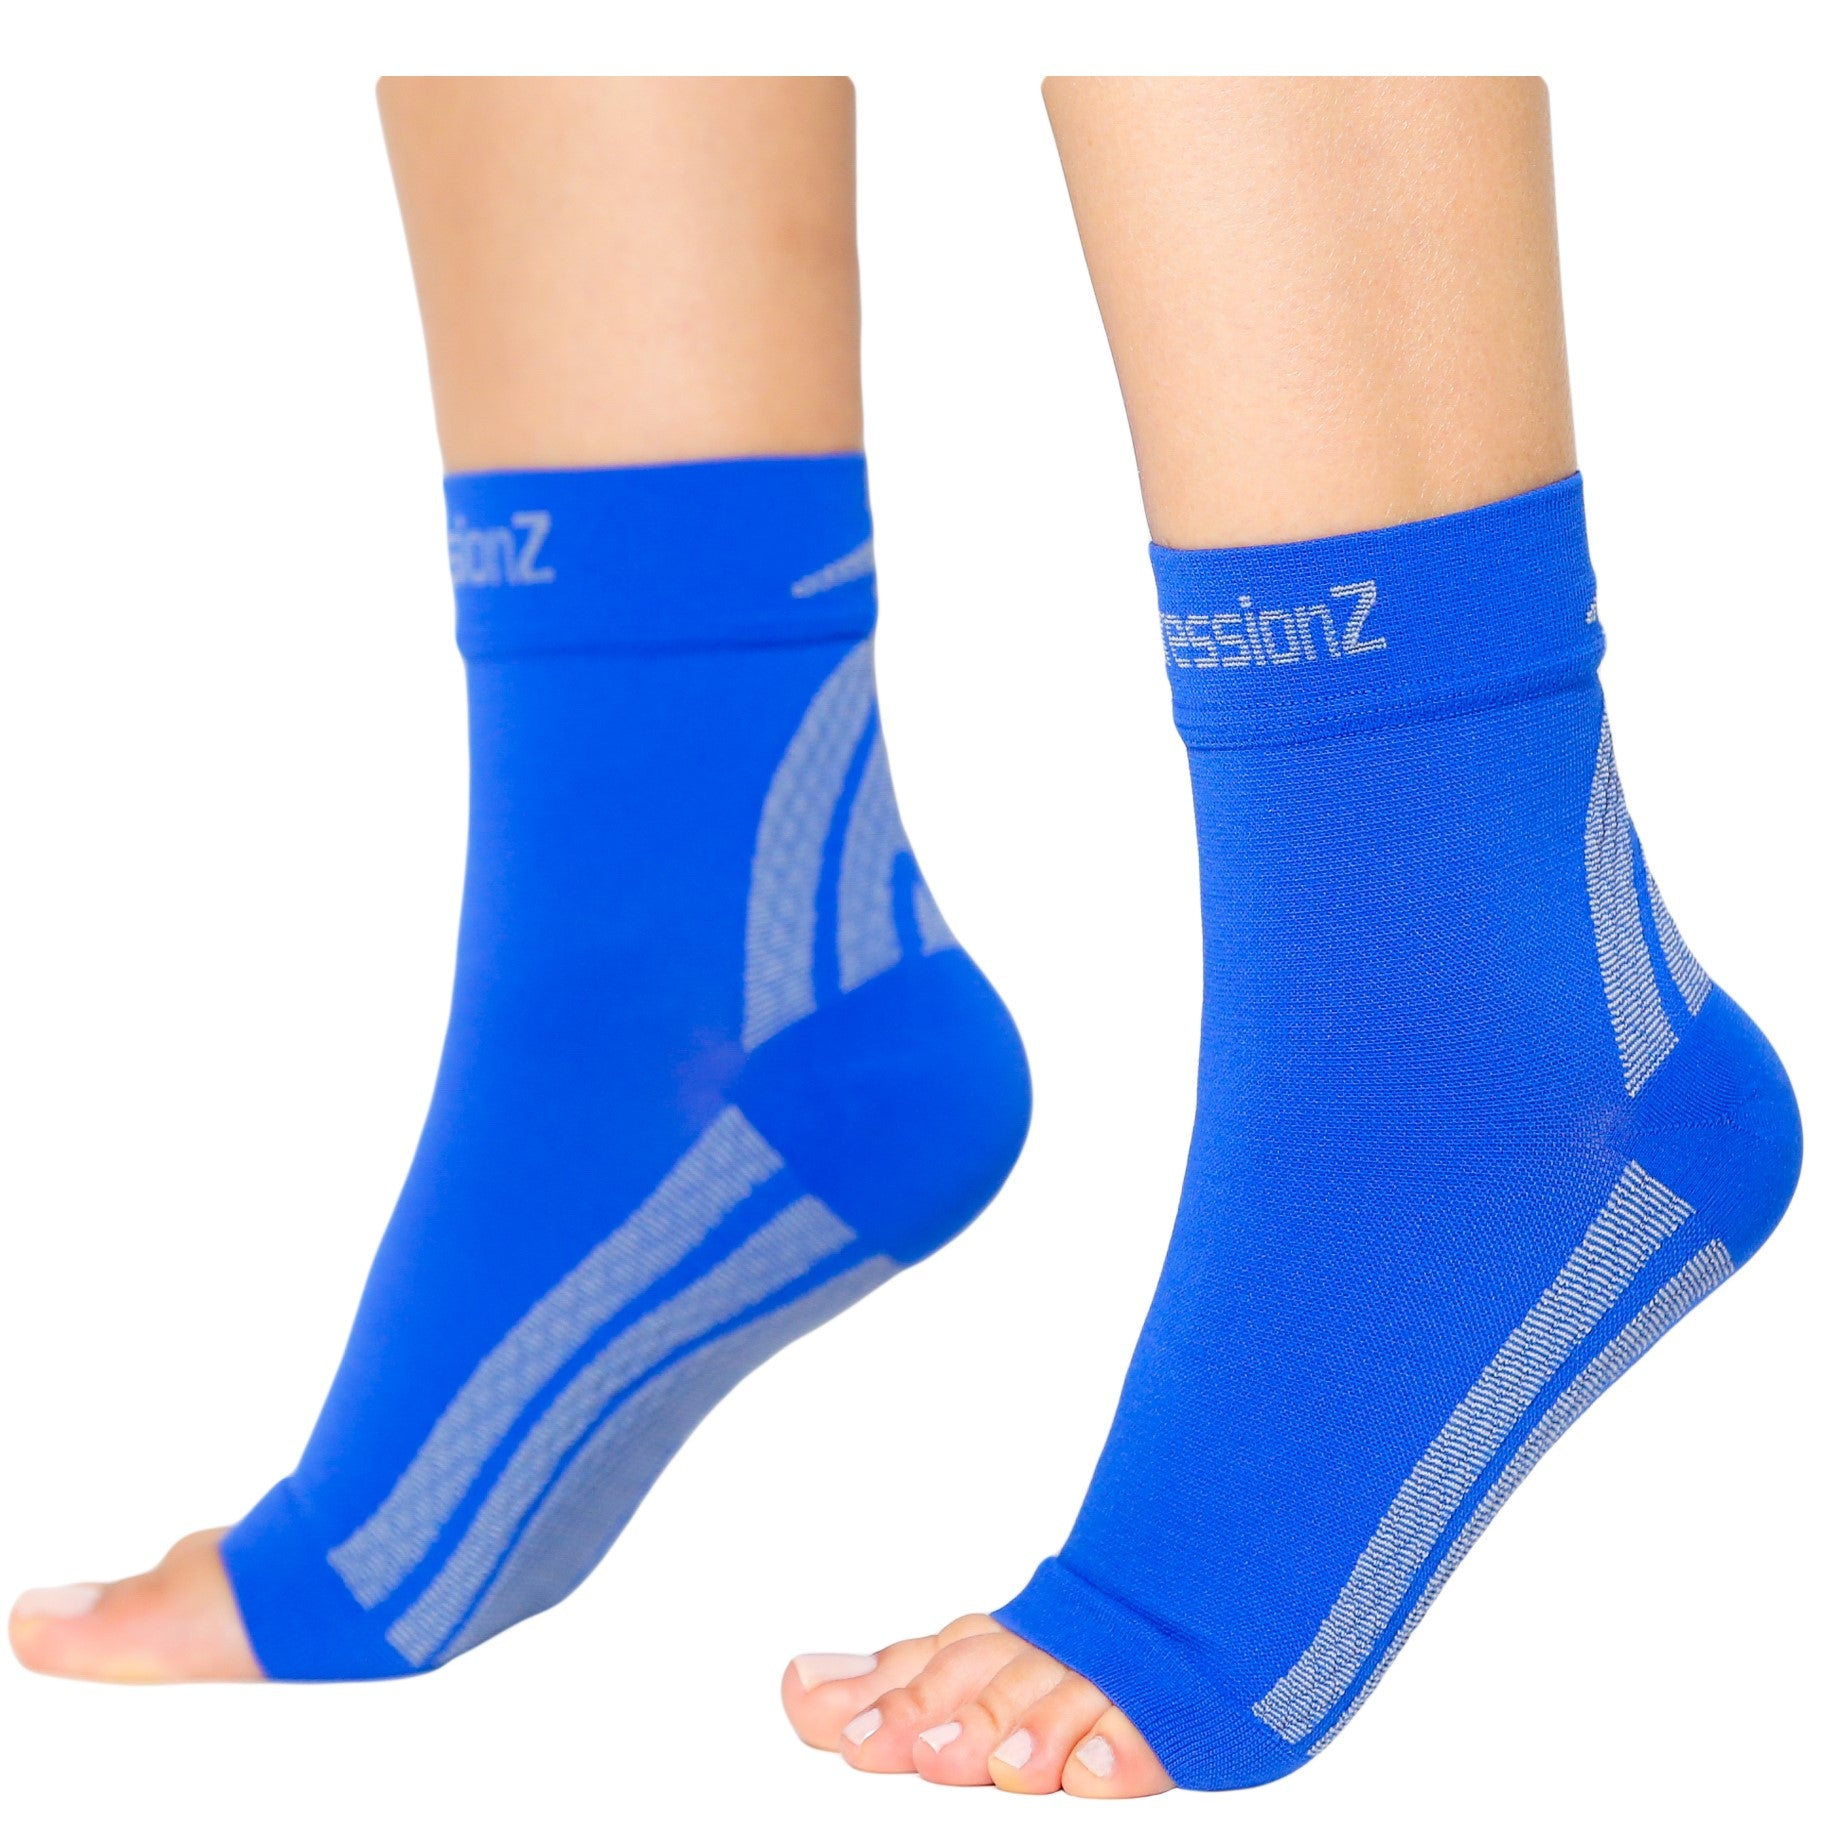 Foot Sleeves - Blue